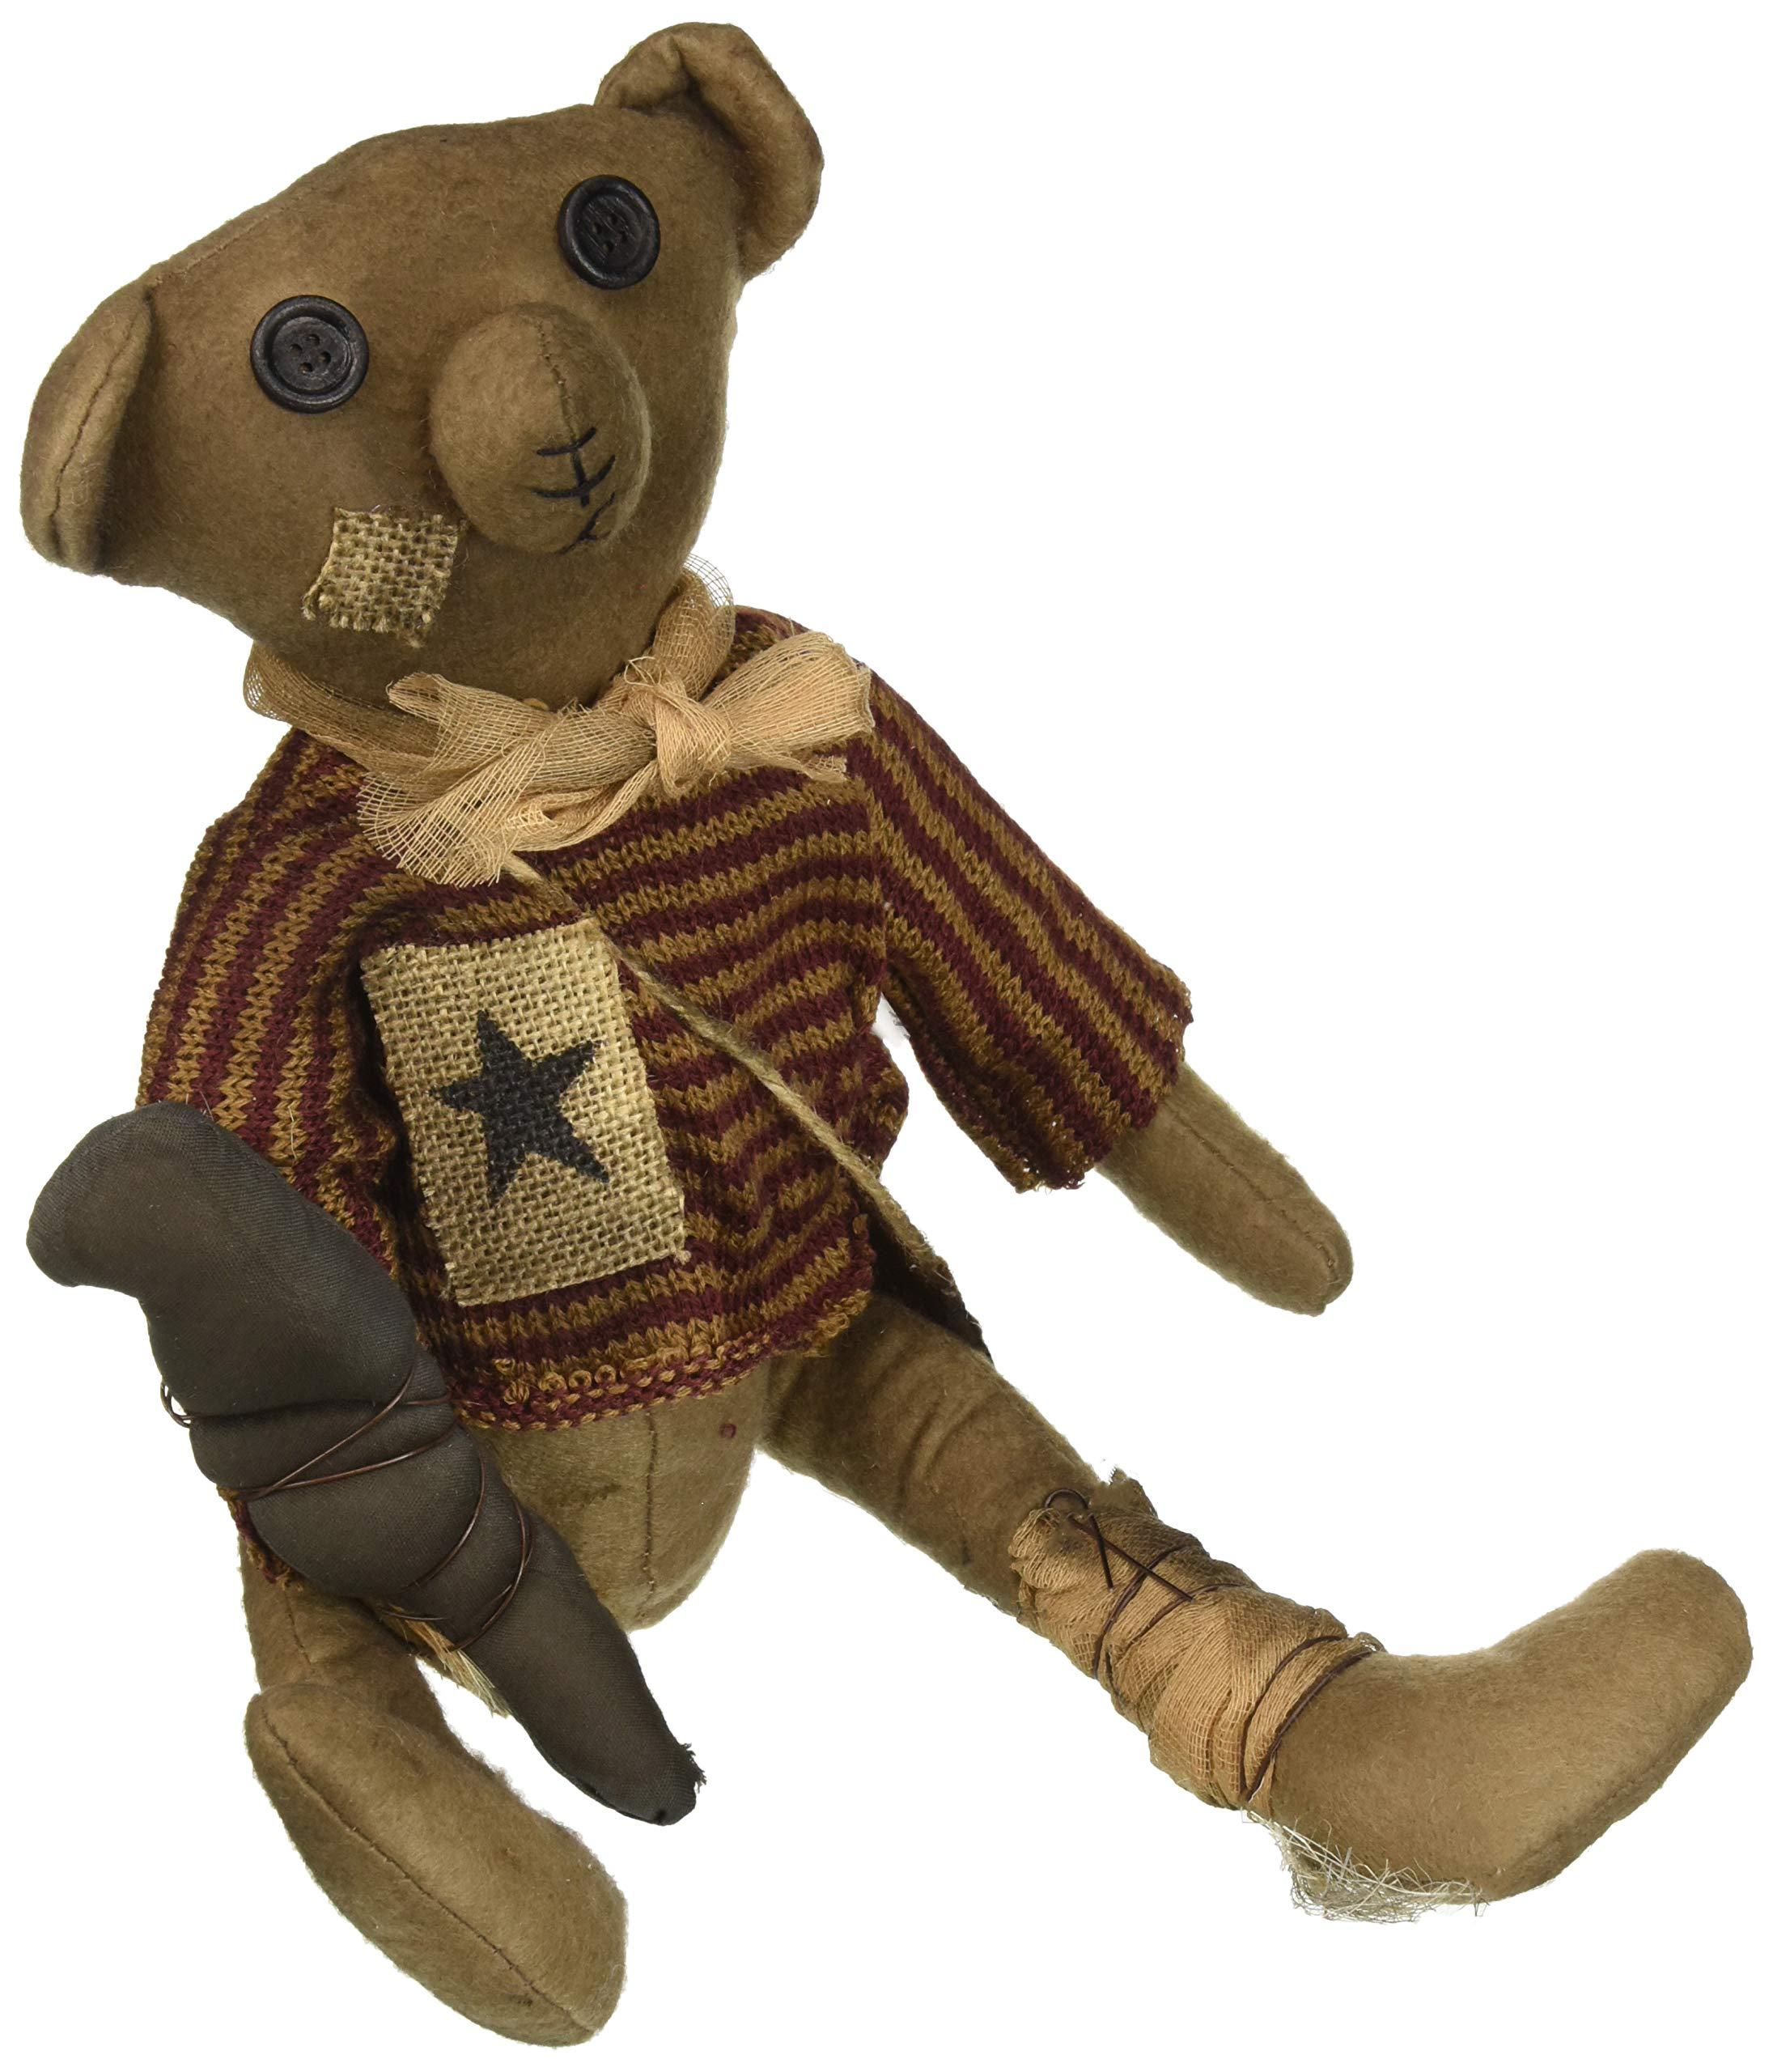 CWI Gifts Robert E Bear Doll, Multicolored by CWI Gifts (Image #1)